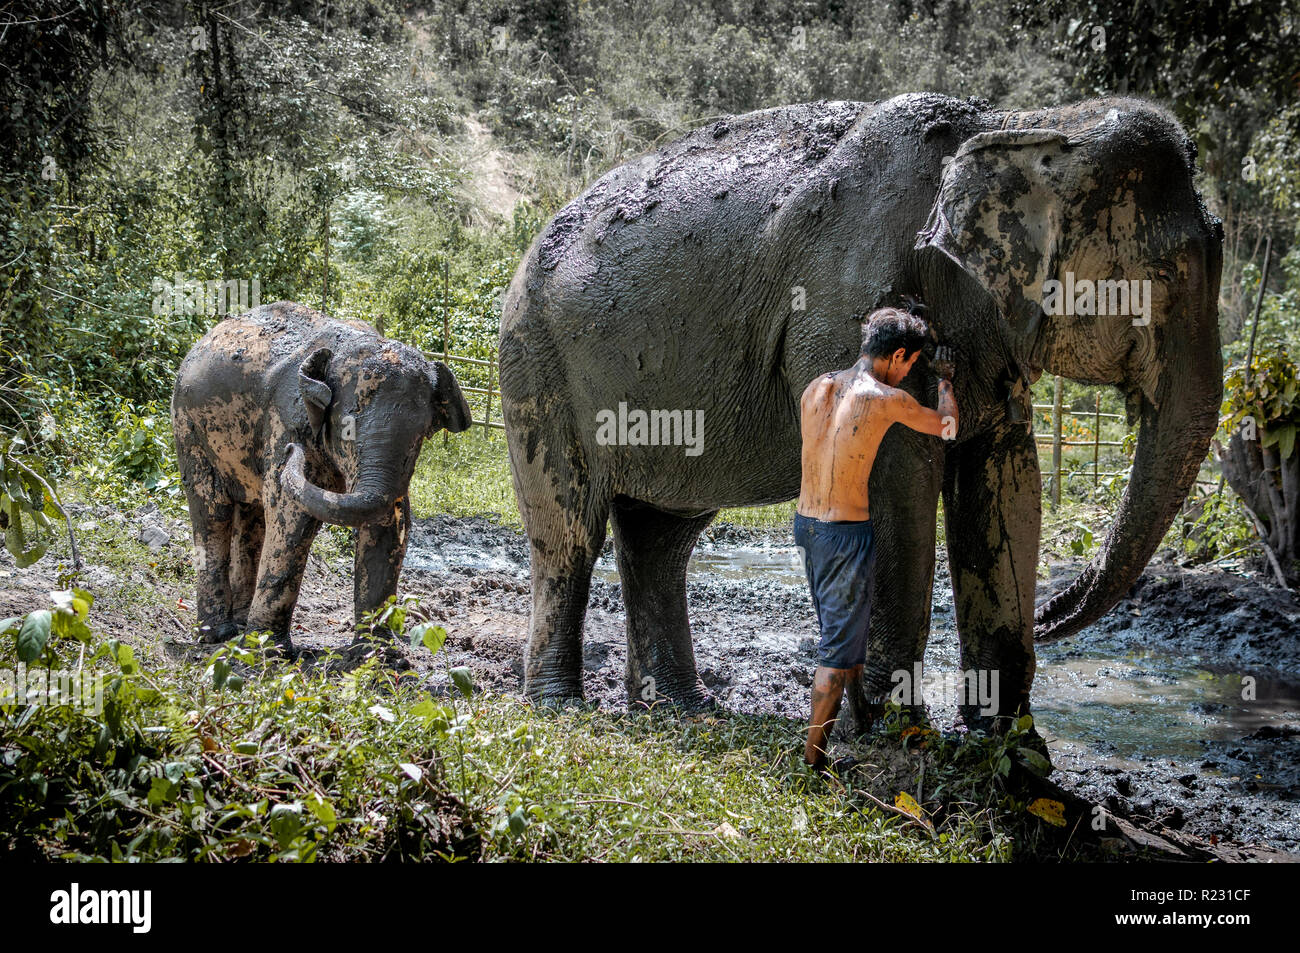 Elephants having mud bath in the deep northern forest of Chiang Mai, Thailand. Asia. - Stock Image